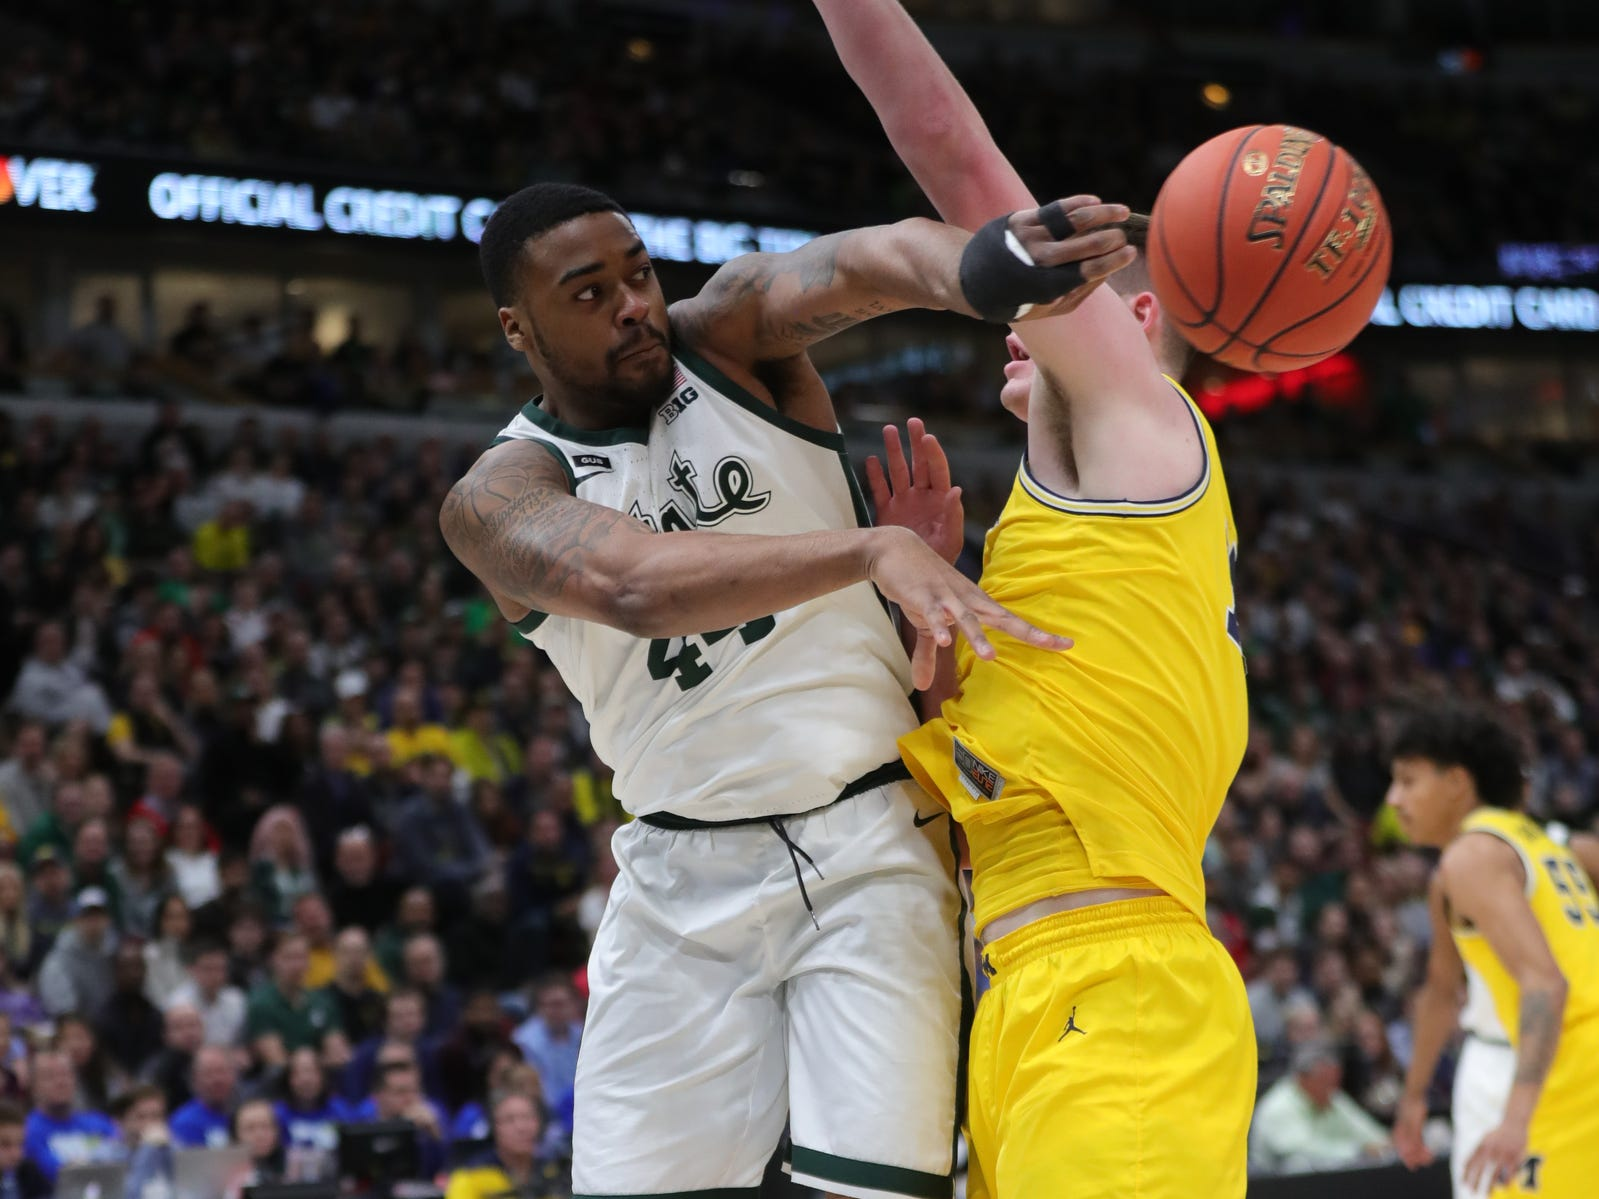 Michigan State's Nick Ward passes around Michigan's Jon Teske during Big Ten tournament championship Sunday, March 17, 2019 in Chicago.